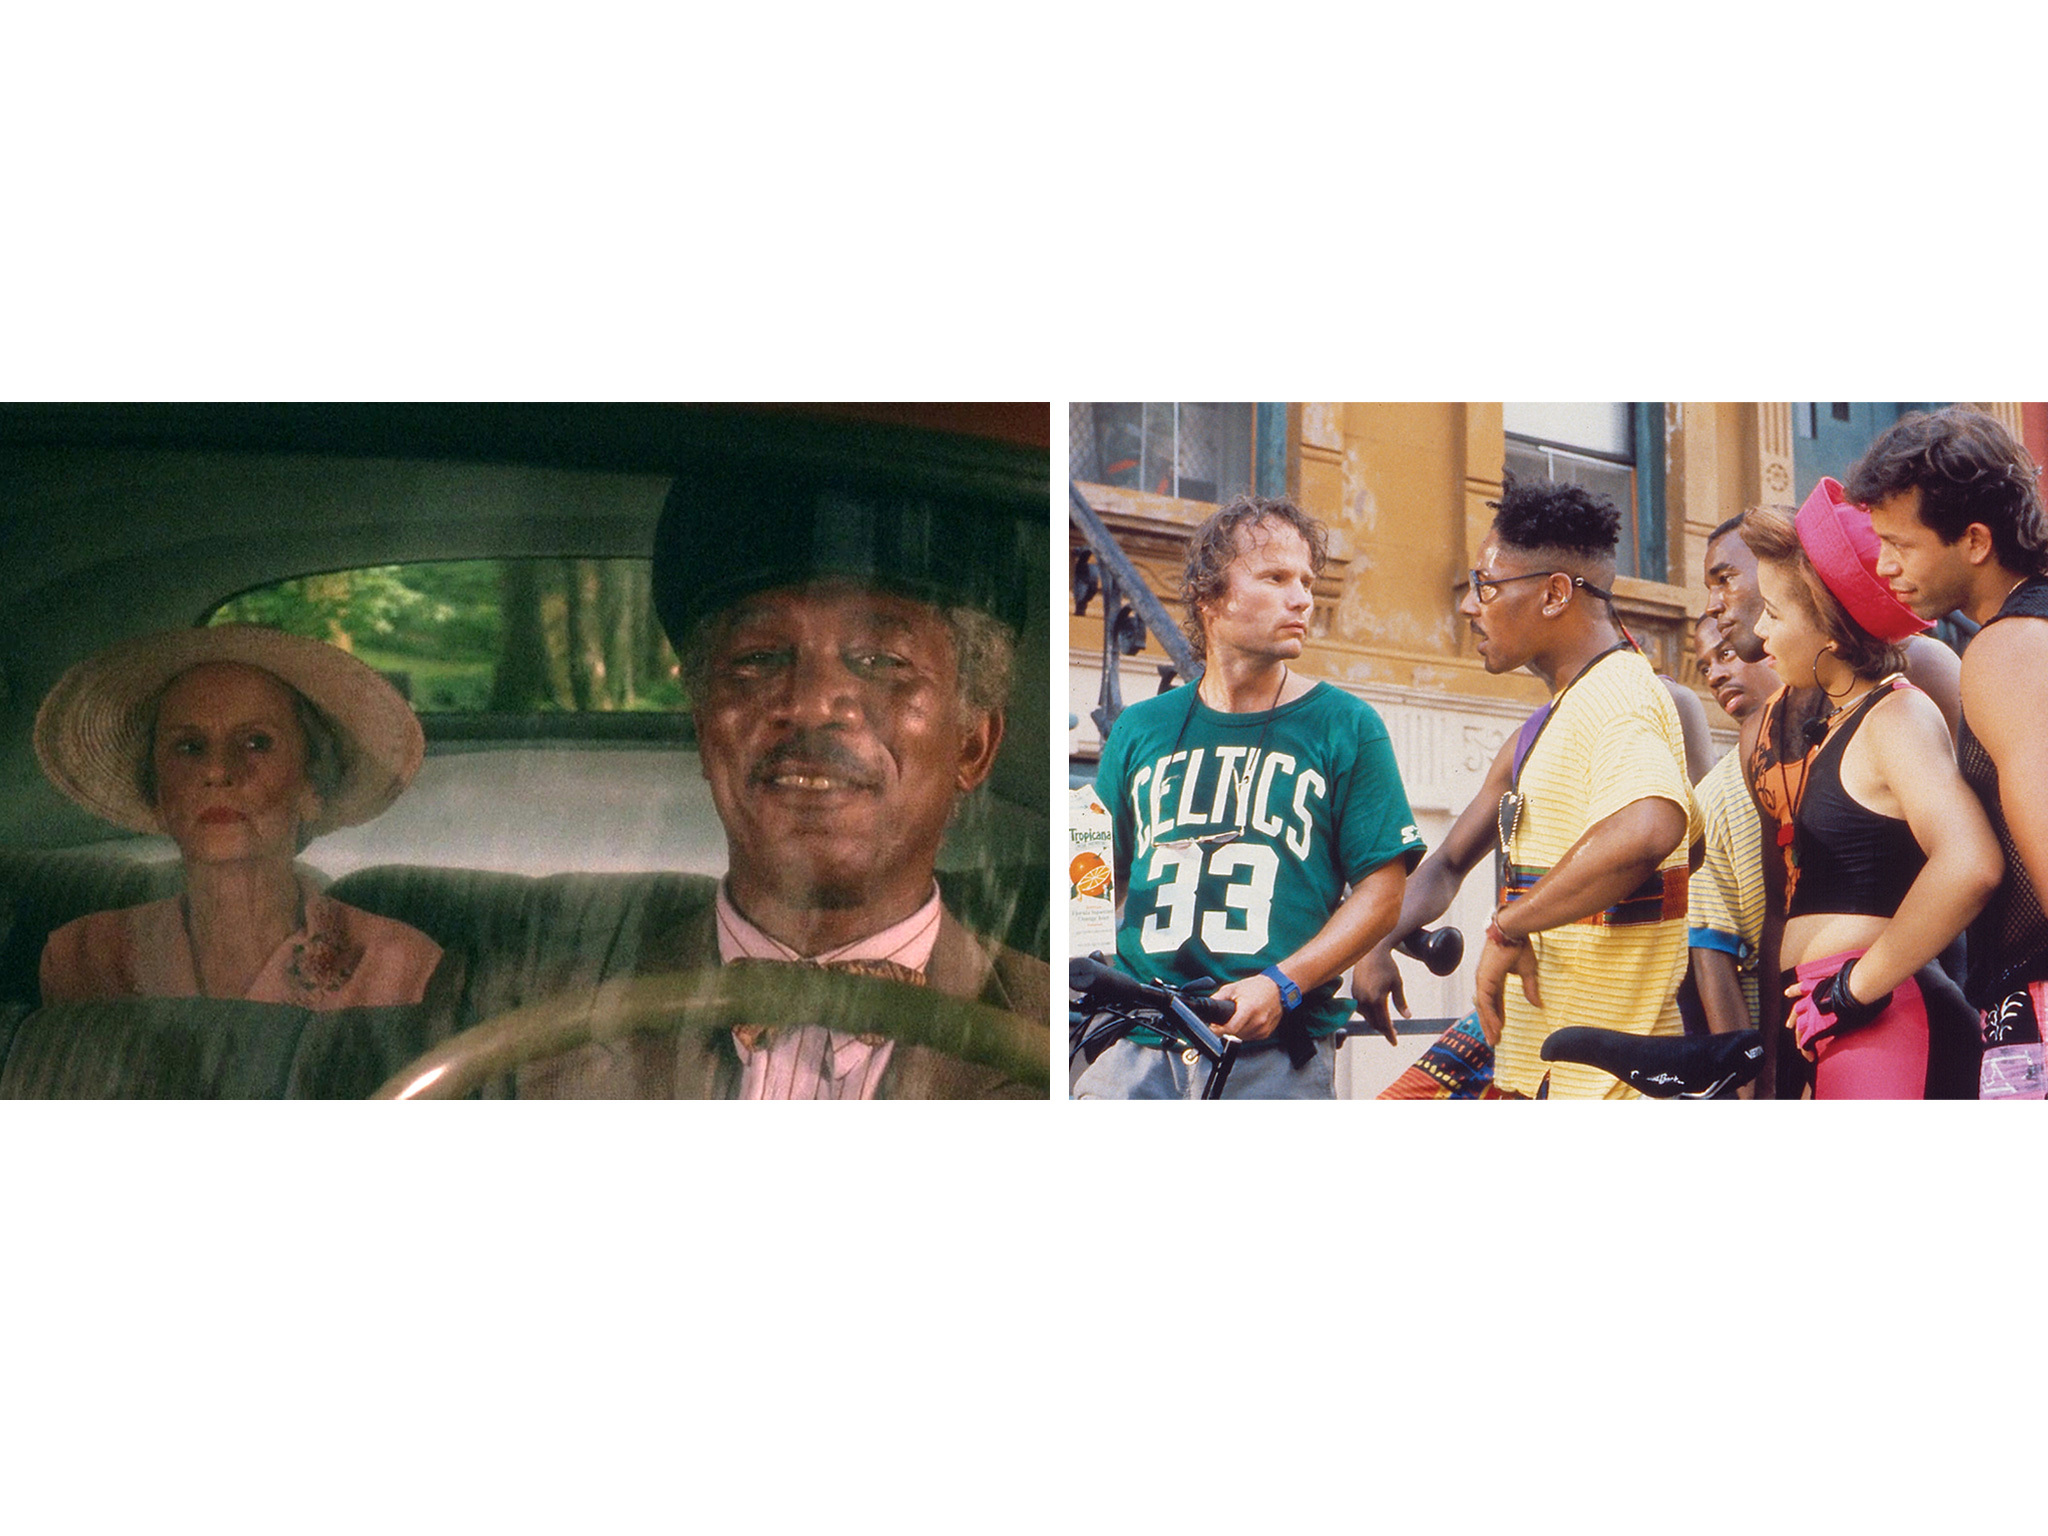 1990: Driving Miss Daisy vs Do the Right Thing